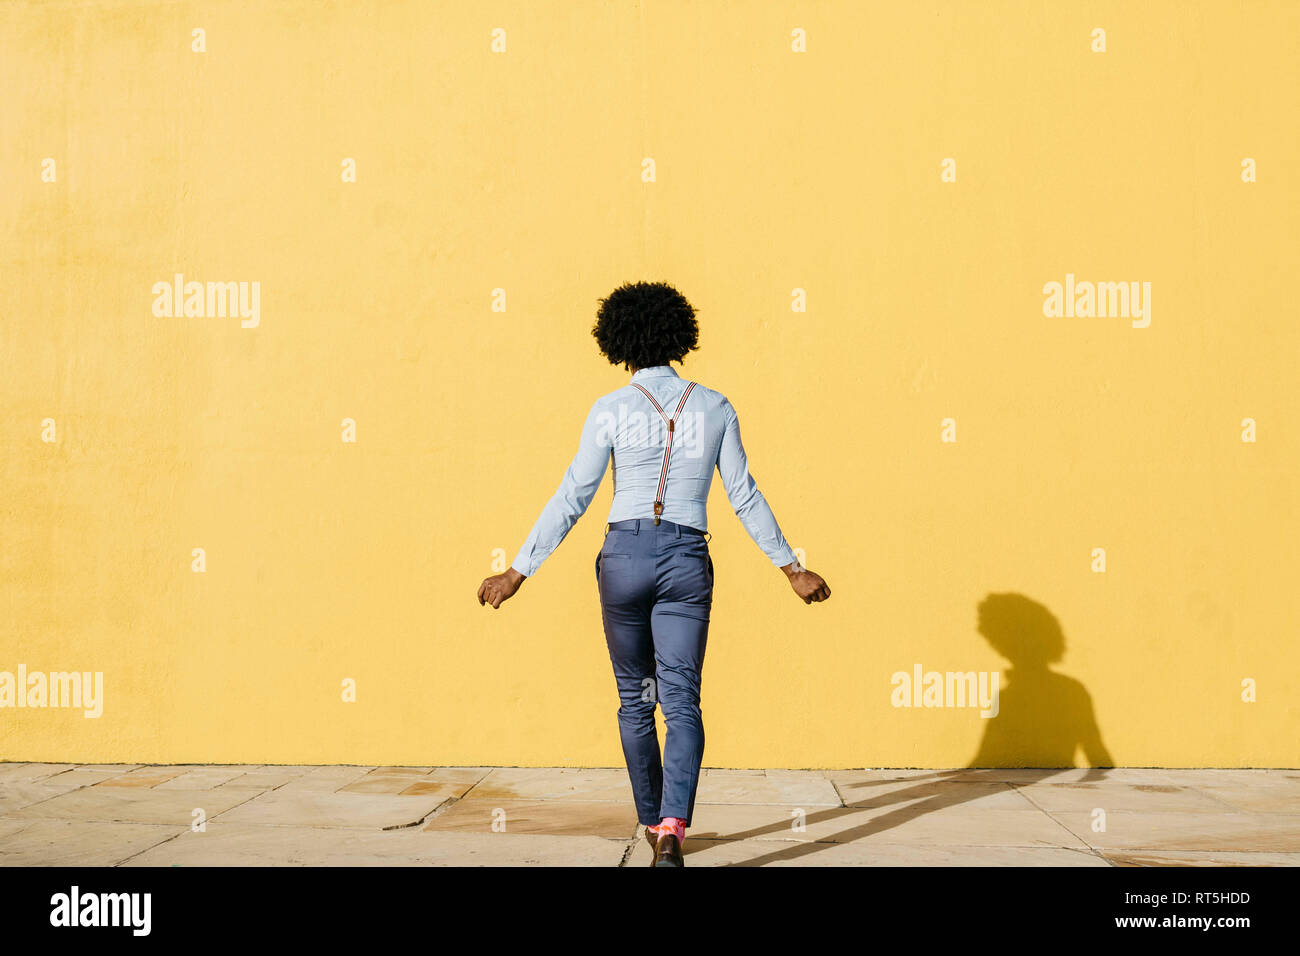 Back view of man wearing suspenders dancing in front of yellow wall - Stock Image